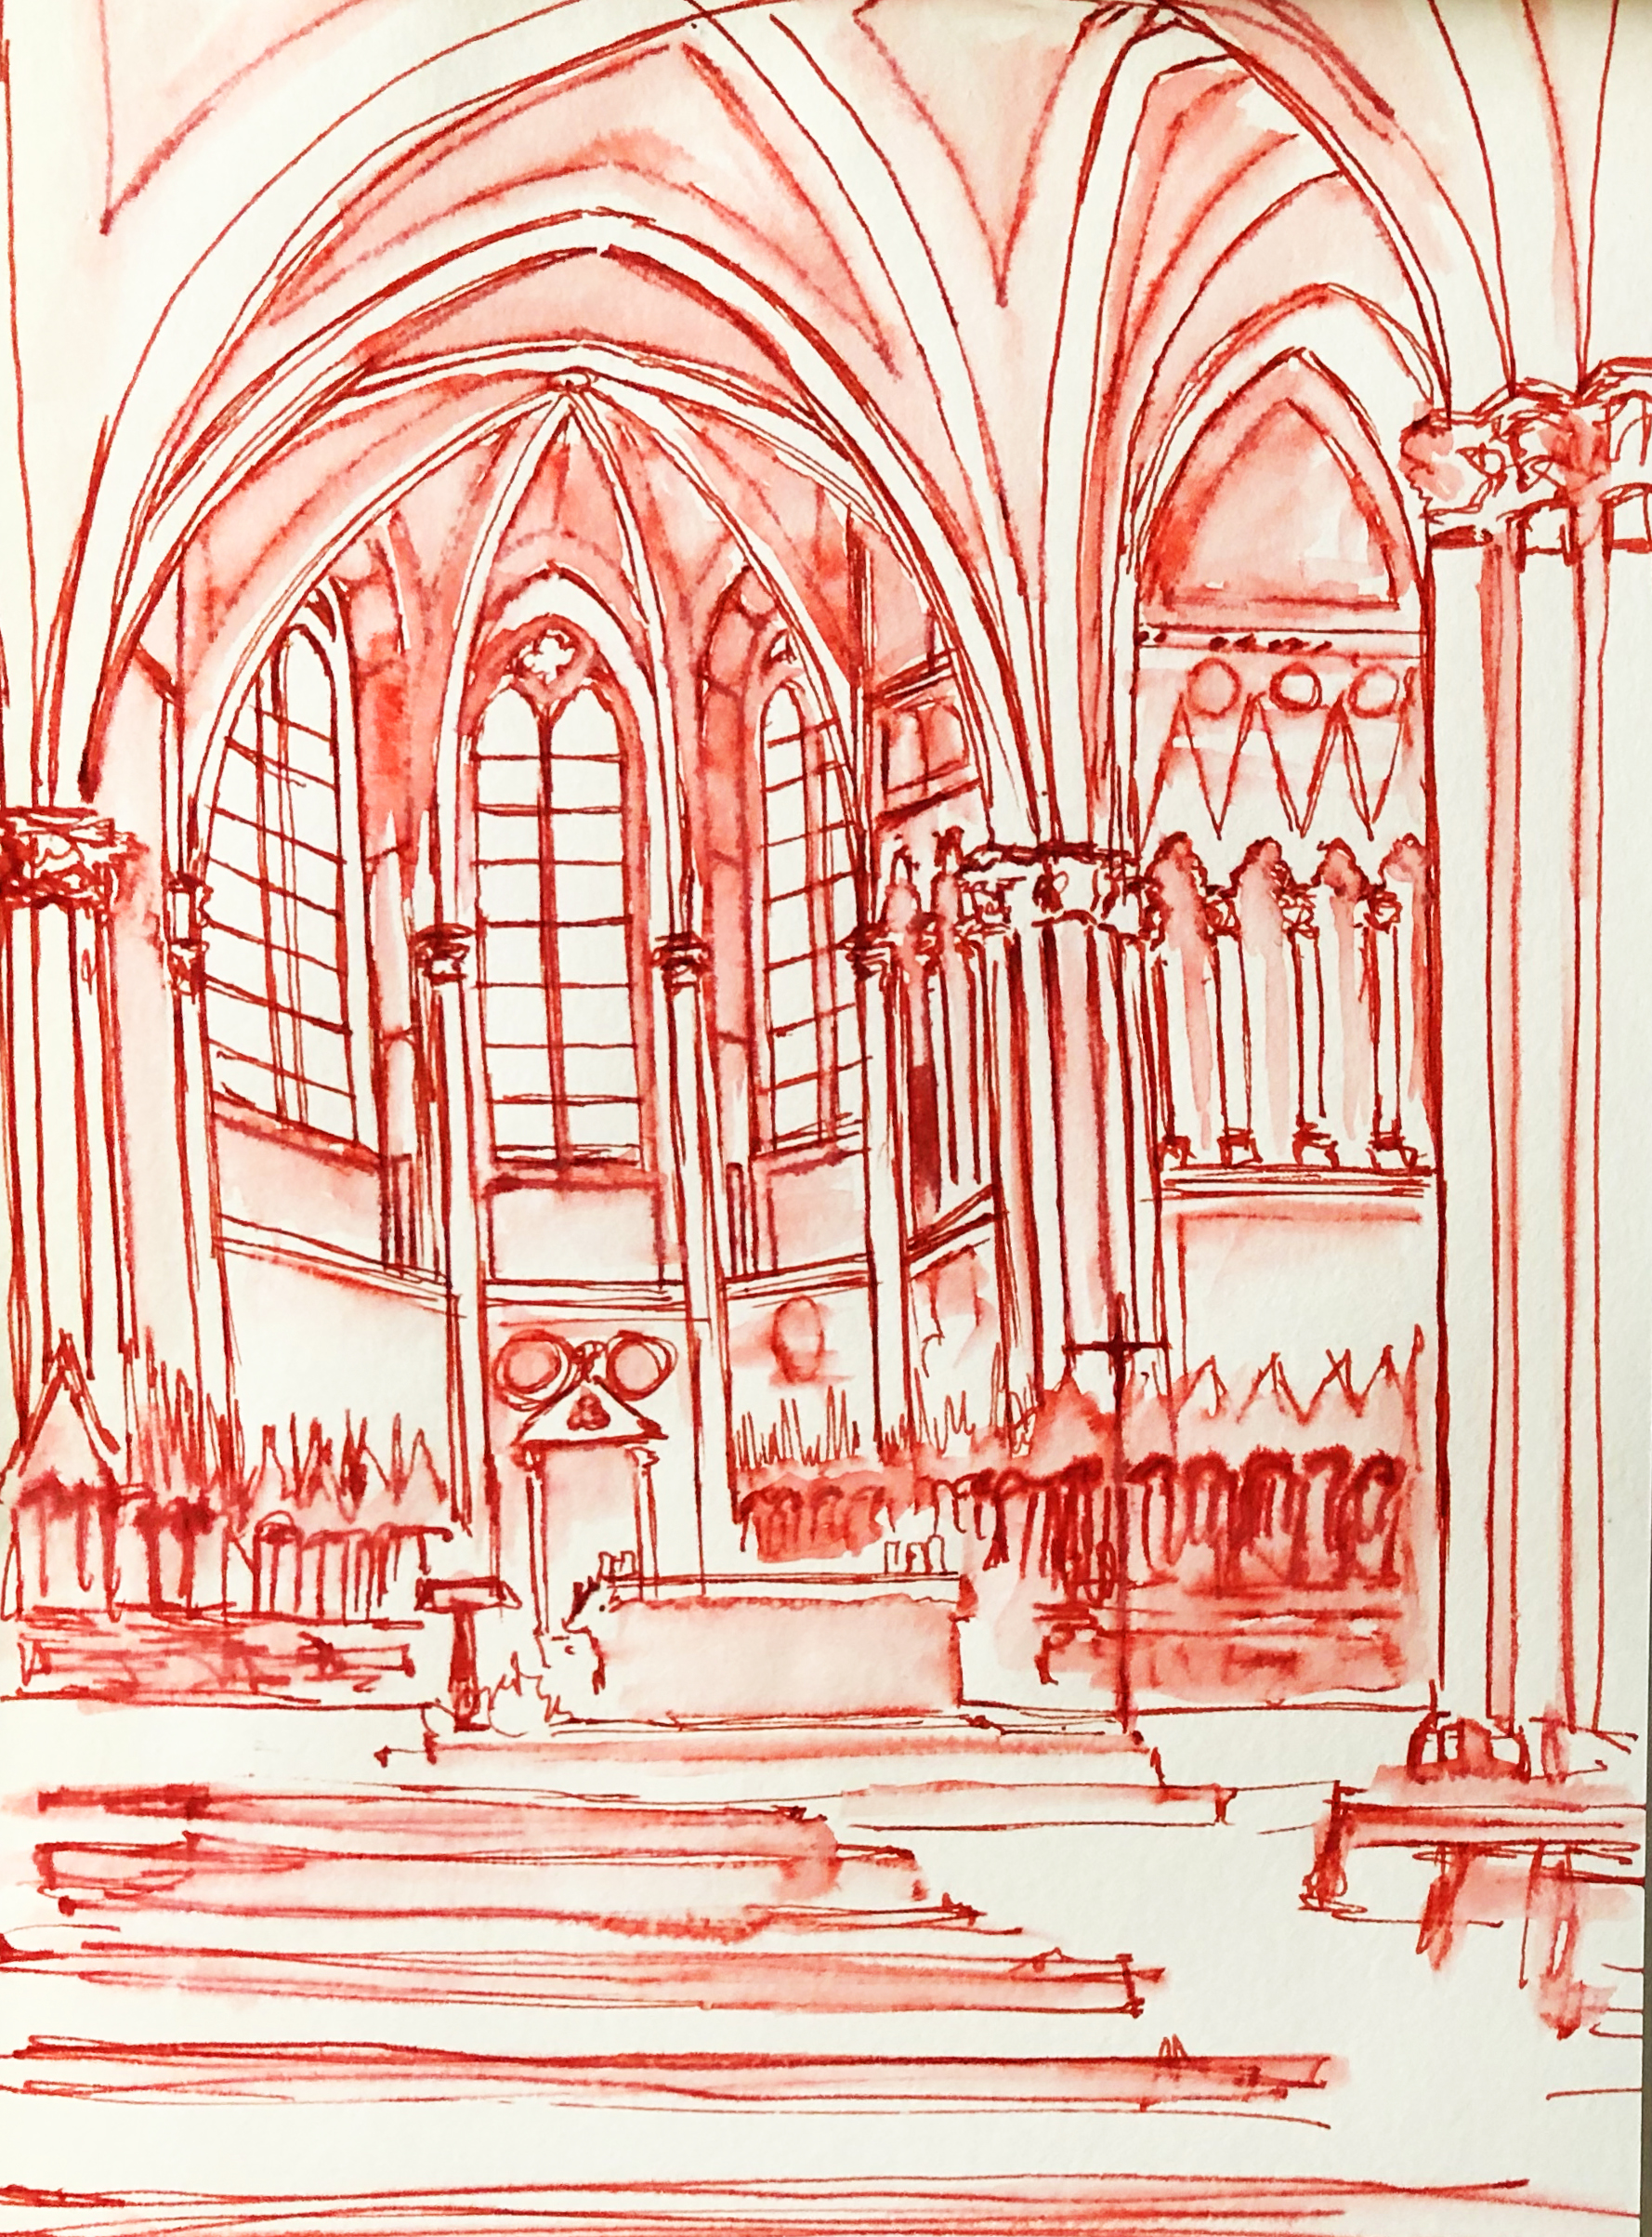 San Francesco Upper Basilica, 2018   Ink and water on paper, 5 x 7 inches